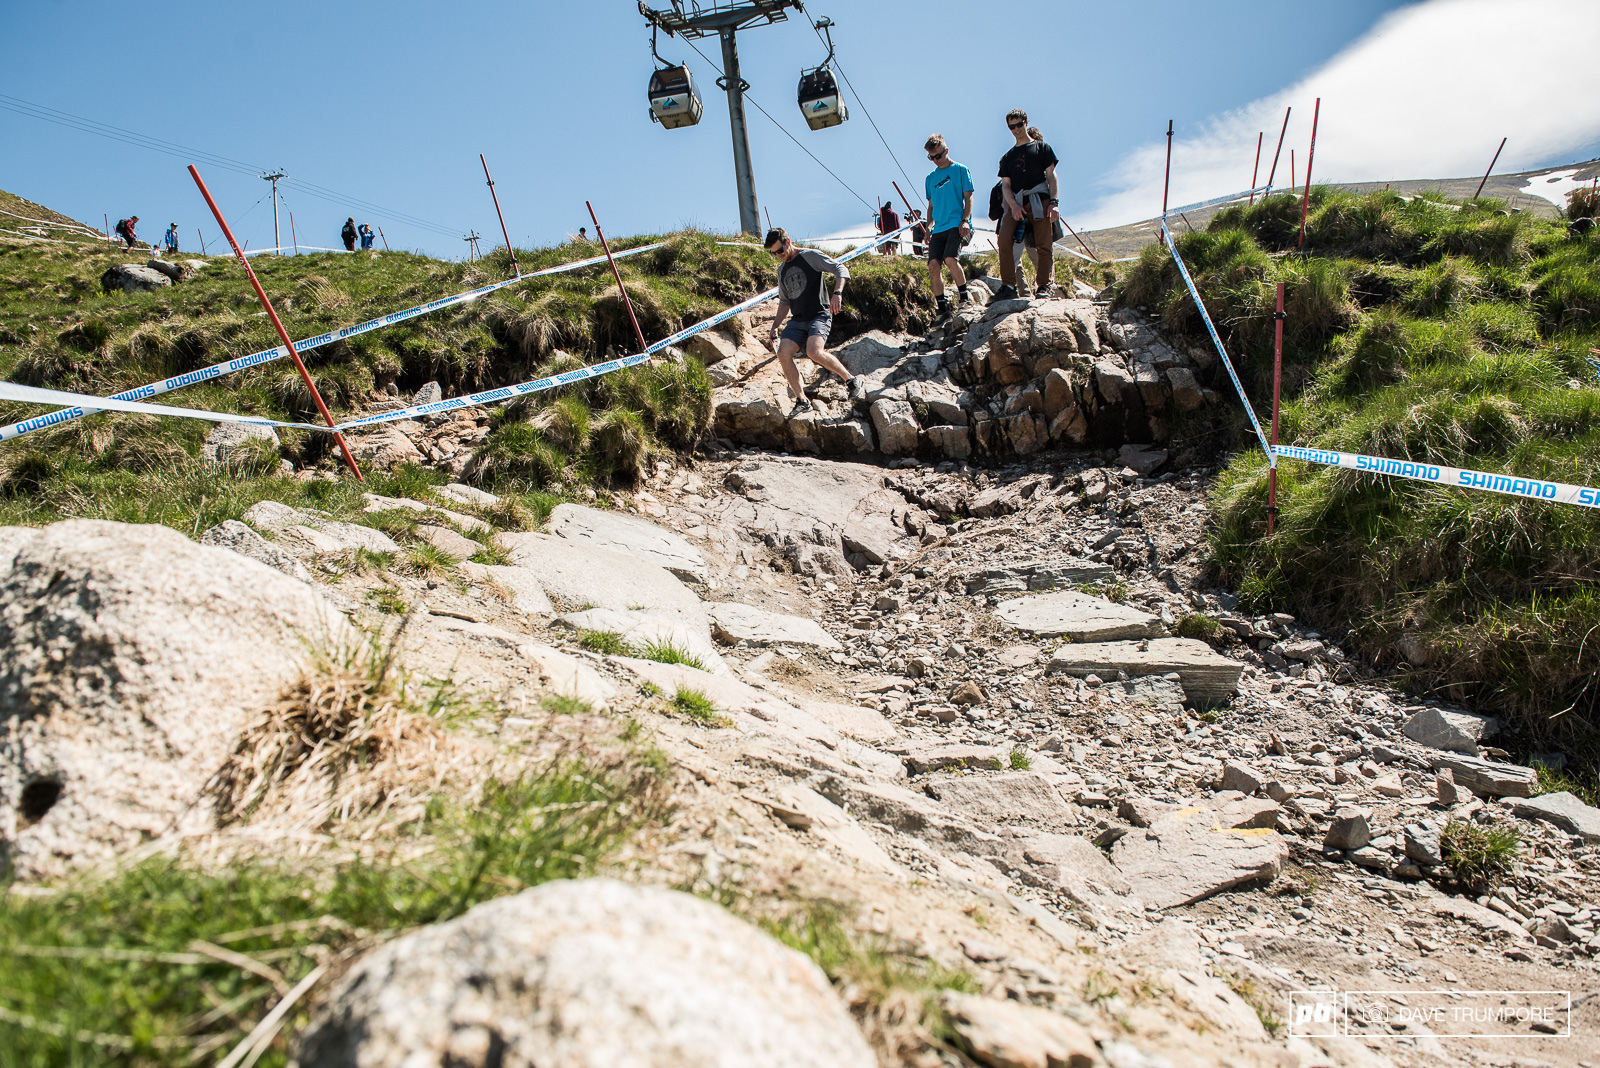 Track Walk - Fort William DH World Cup 2016 images